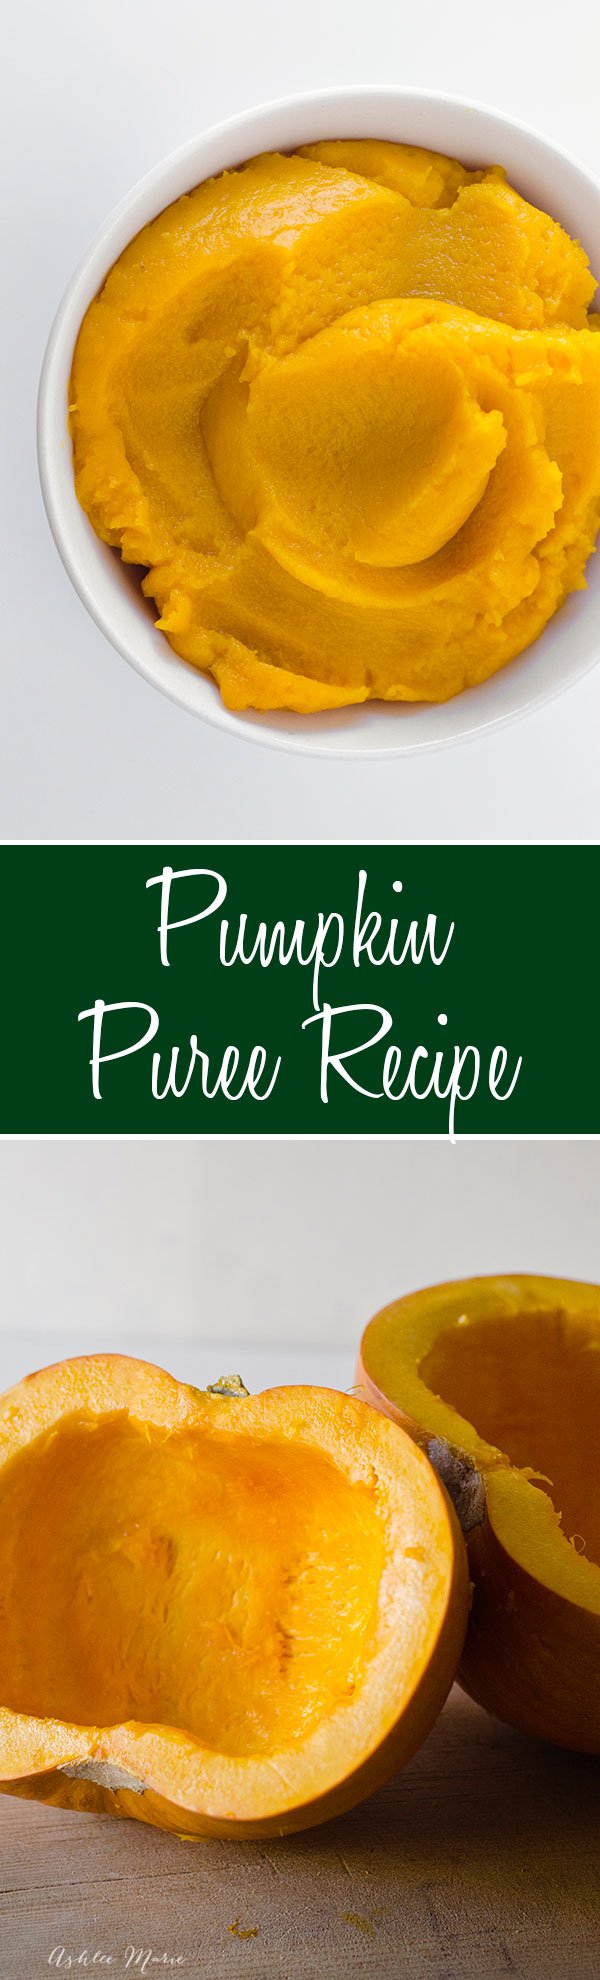 how to easily make your own homemade pumpkin puree